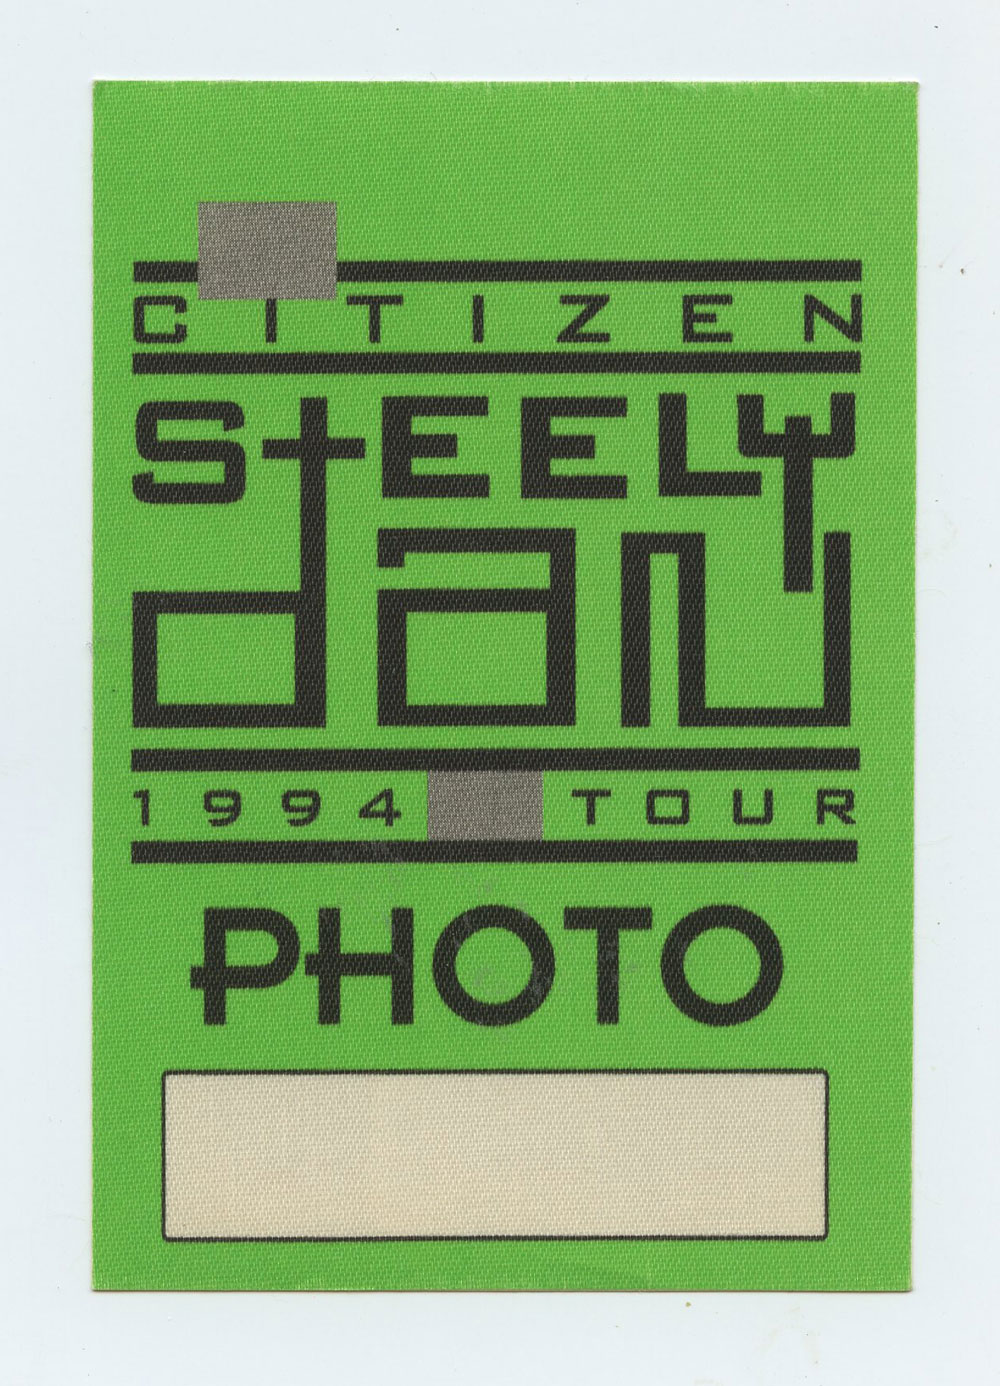 Steely Dan Backstage Pass 1994 Tour